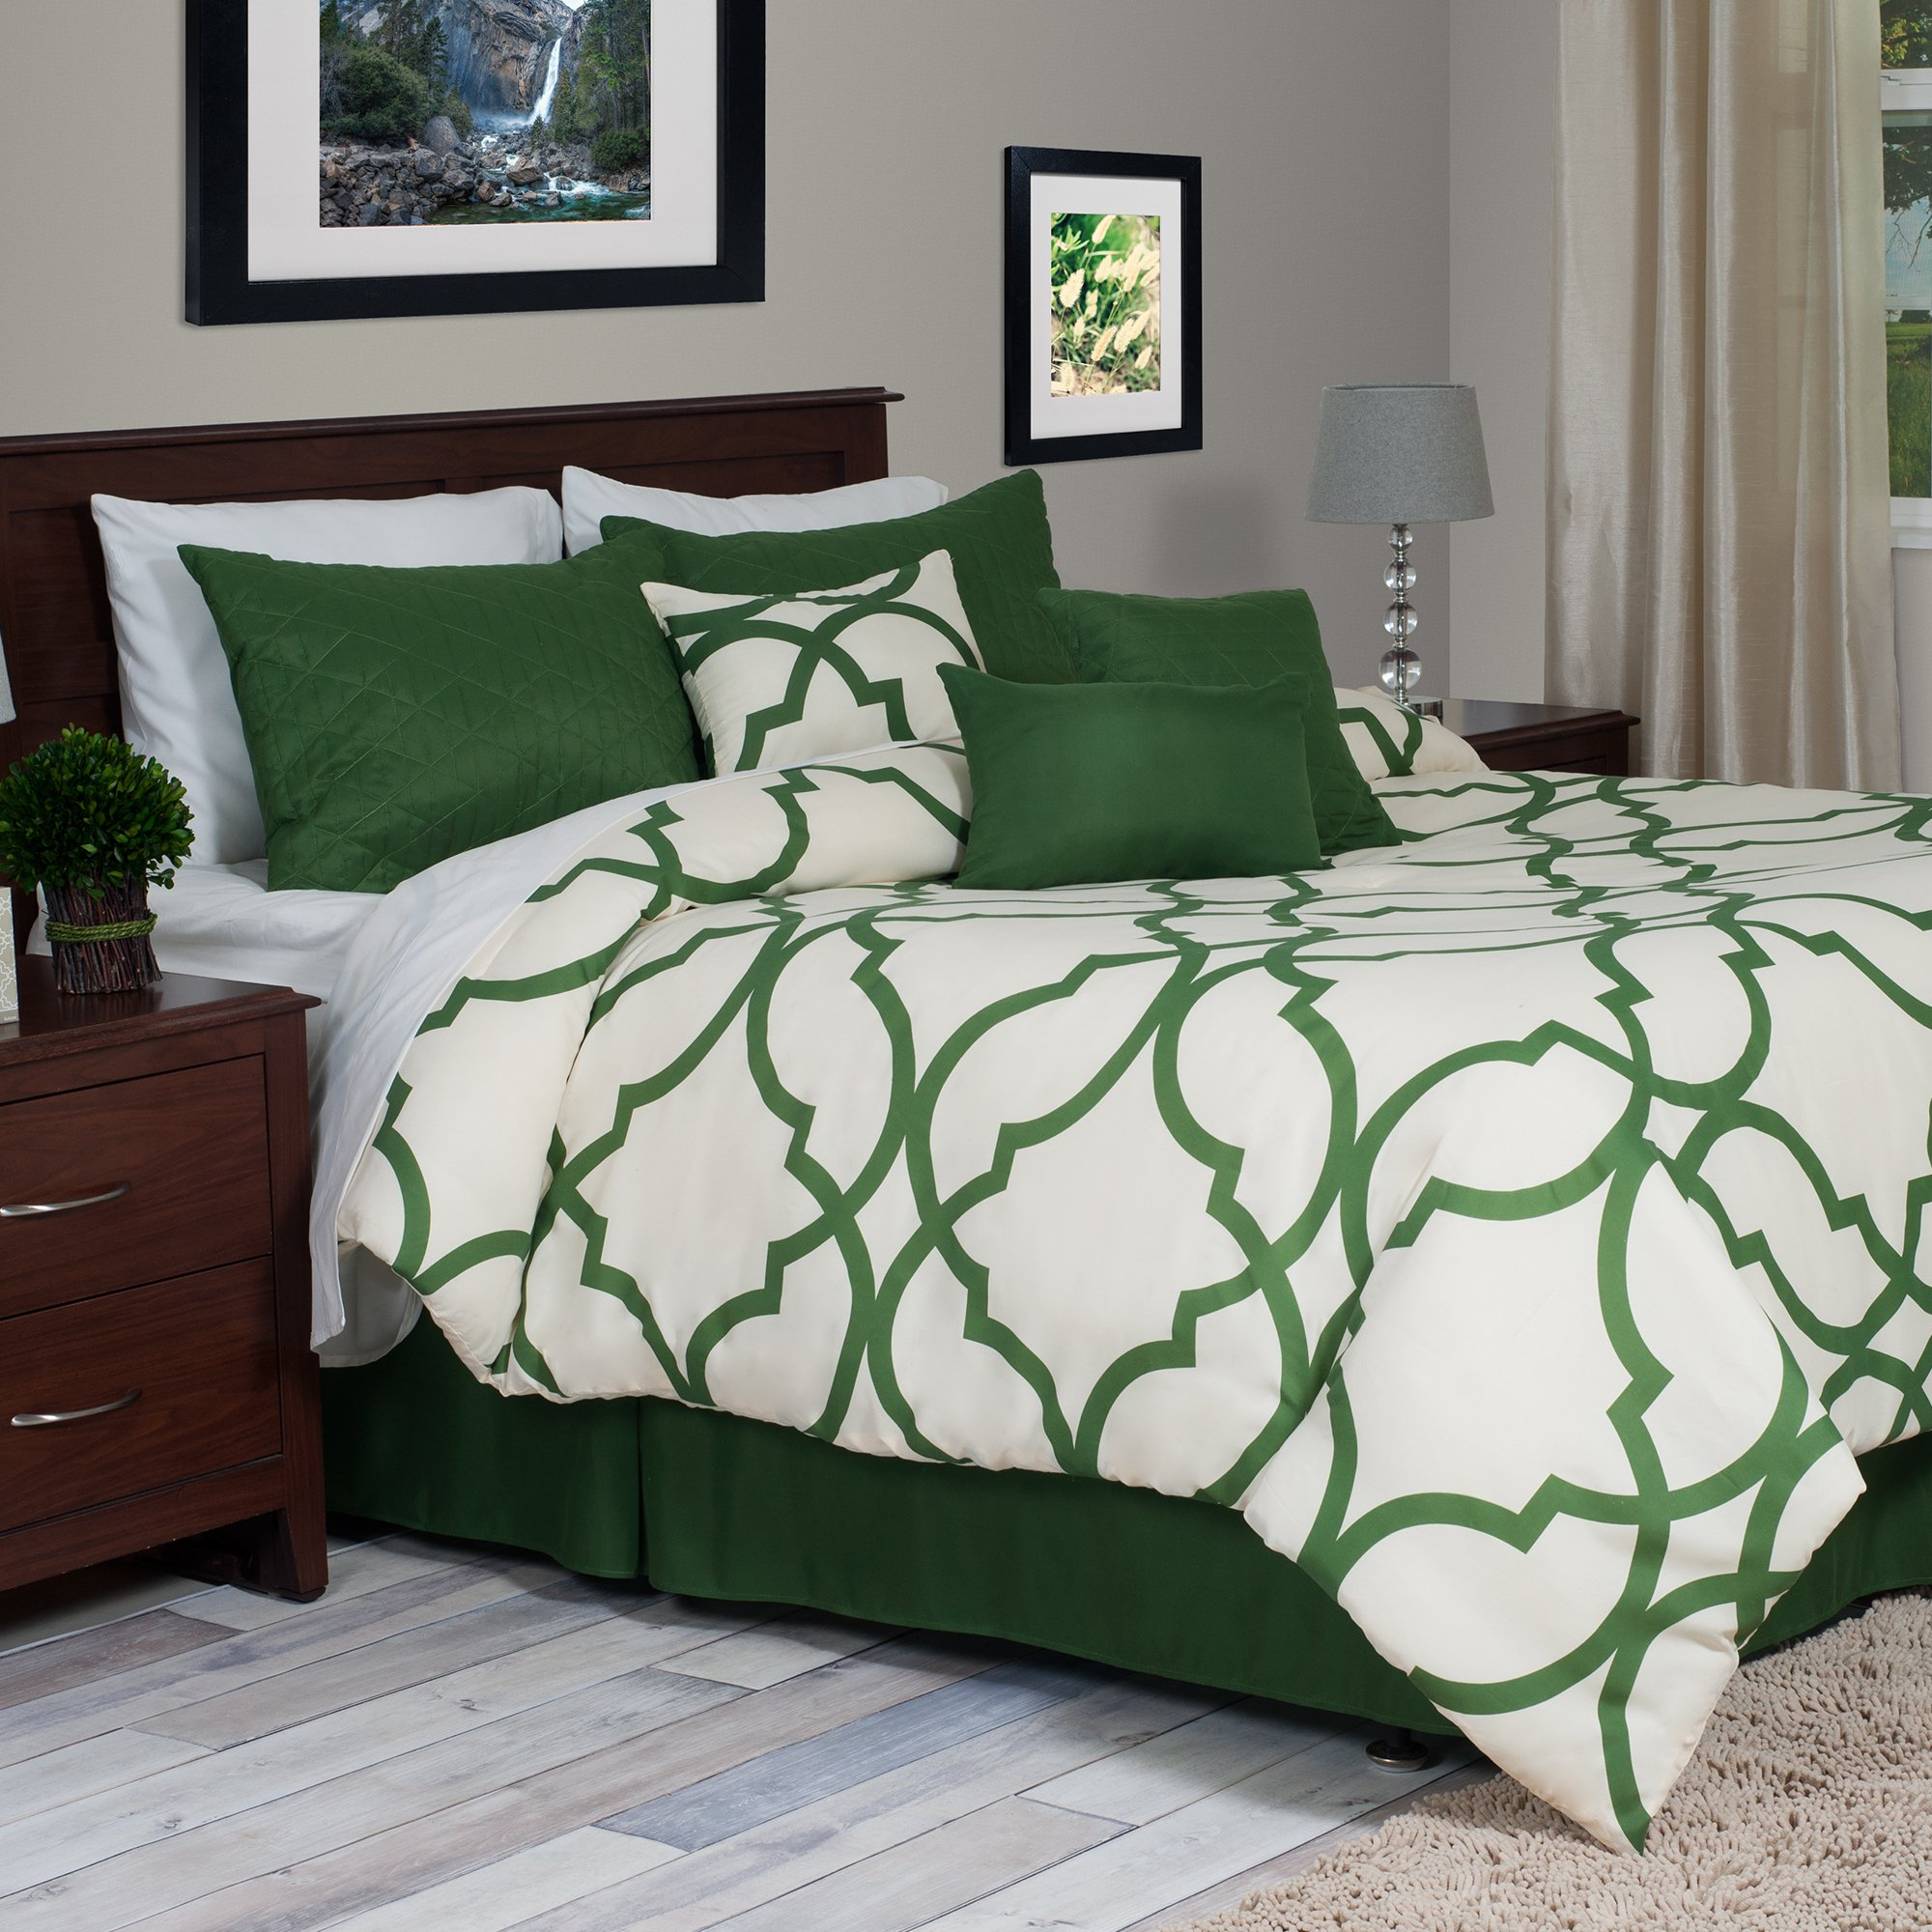 Lavish Home 7-Piece Oversized Trellis Comforter Set, King, Green by Everyday Home